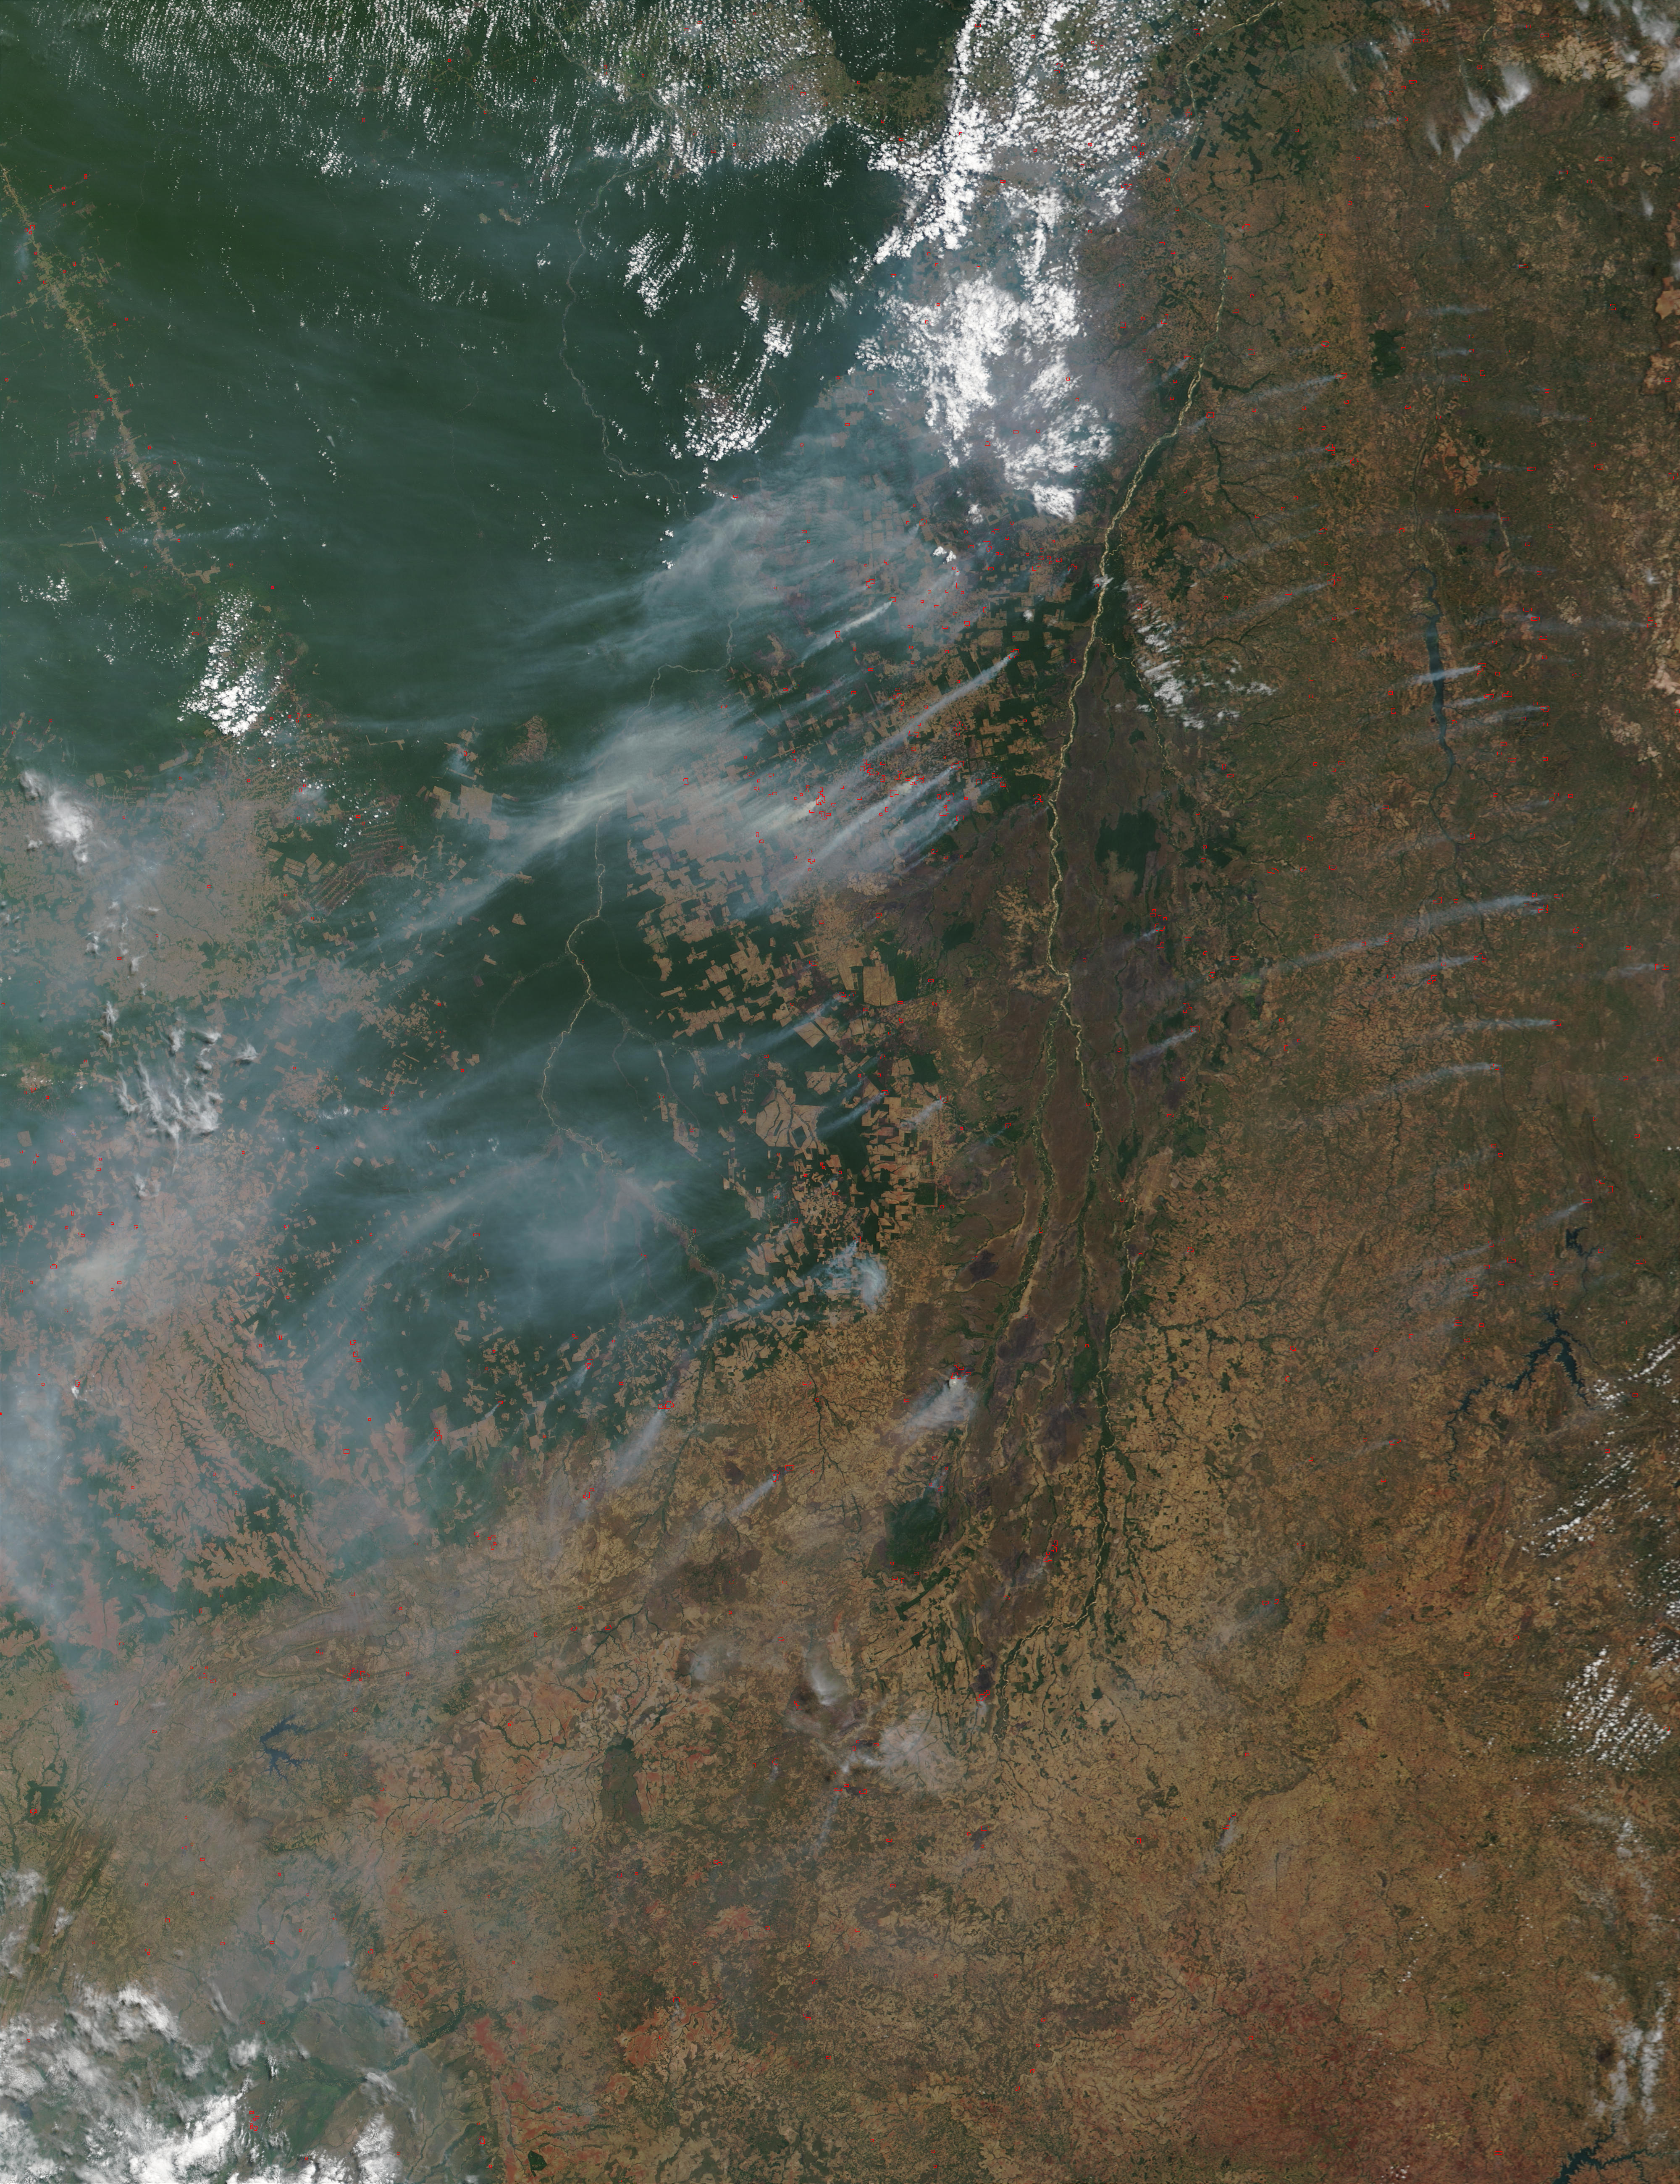 Fires and smoke in Central Brazil